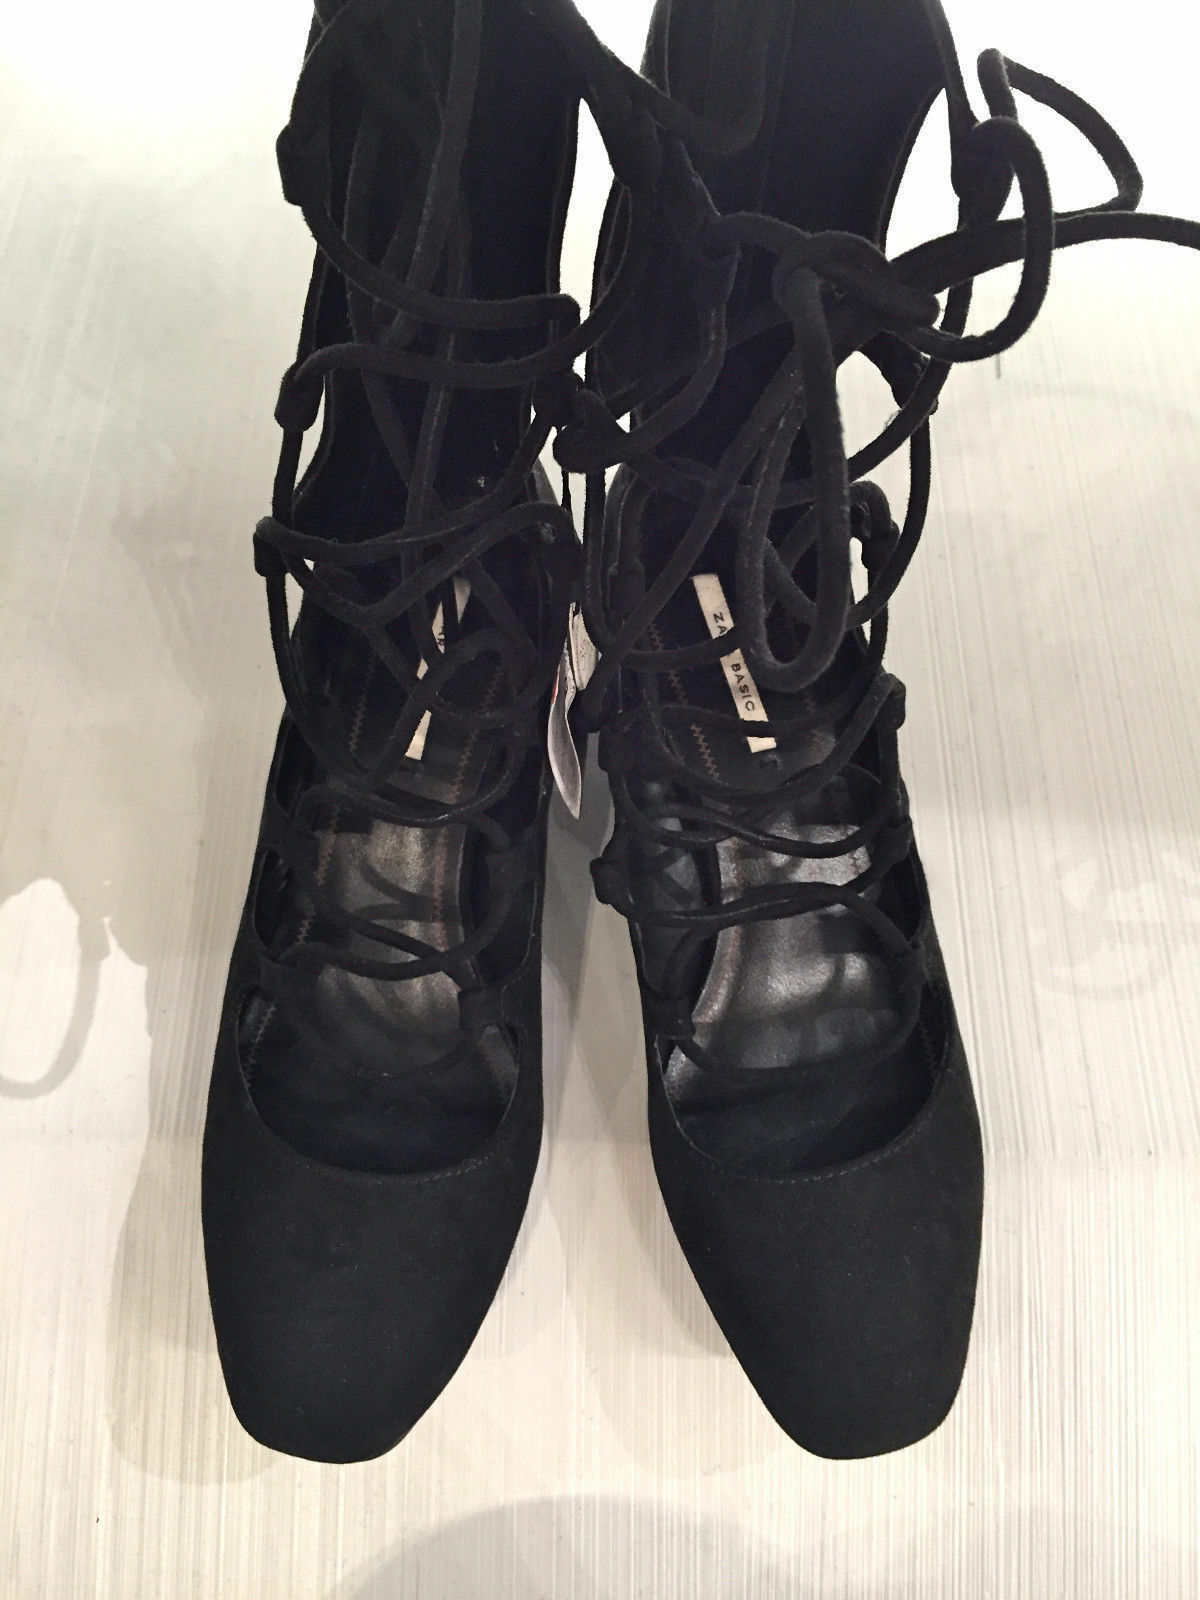 ZARA NEW NEW NEW WOMAN LACE-UP HEELED schuhe schwarz EU 37 UK 4 US 6.5 Ref. 6248 001 311f61